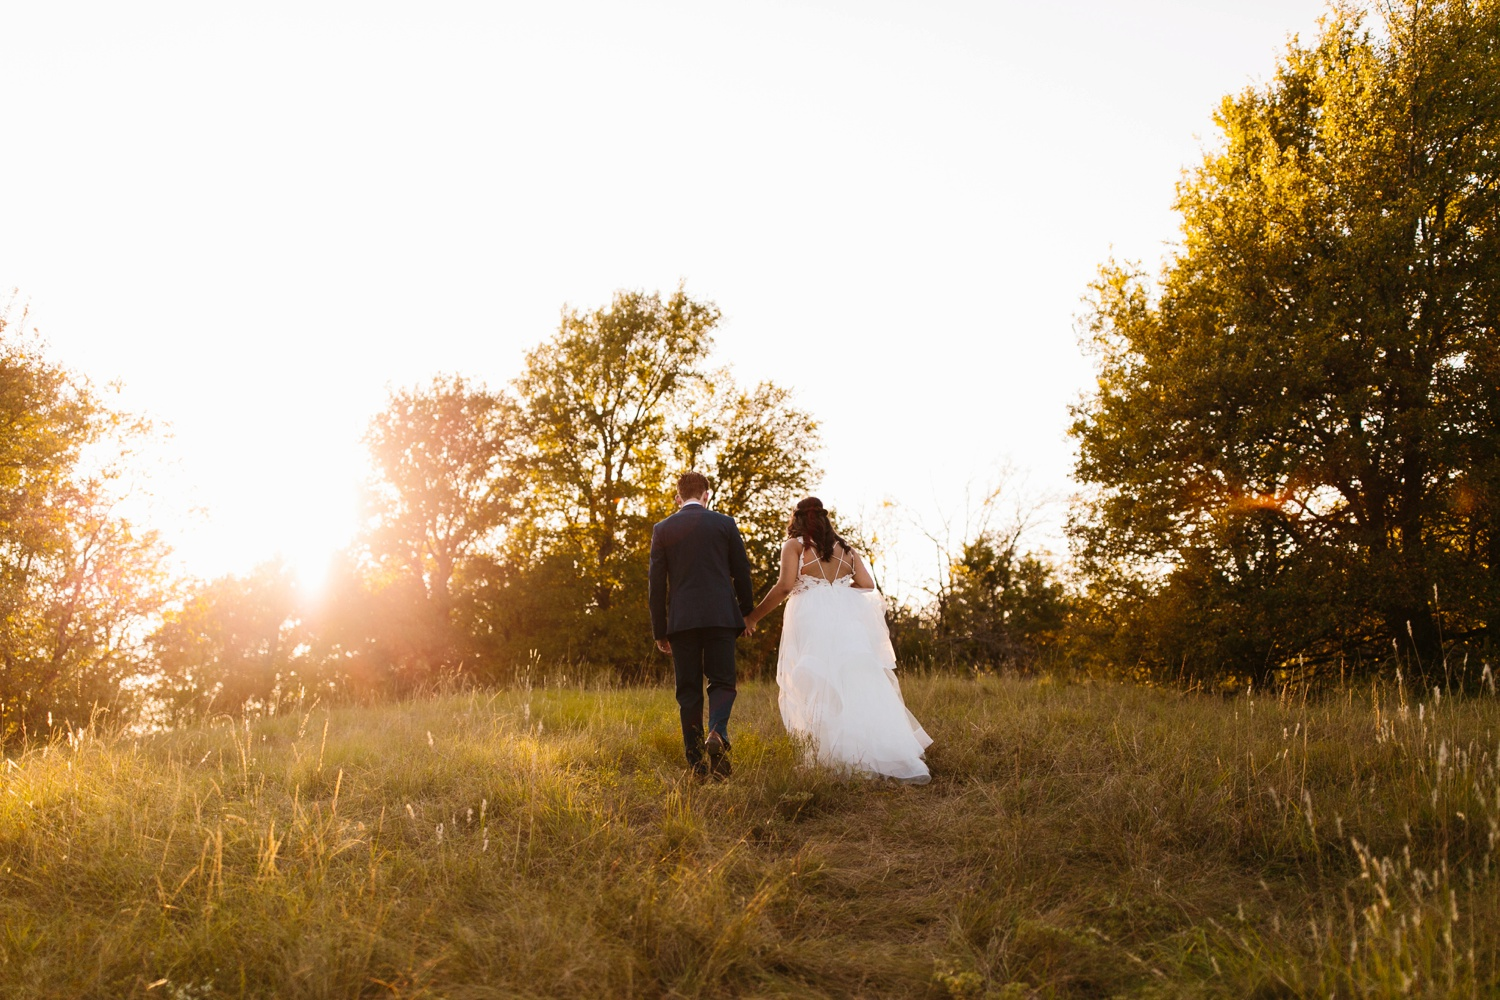 Grant + Lysette | a vibrant, deep burgundy and navy, and mixed metals wedding at Hidden Pines Chapel by North Texas Wedding Photographer Rachel Meagan Photography 217